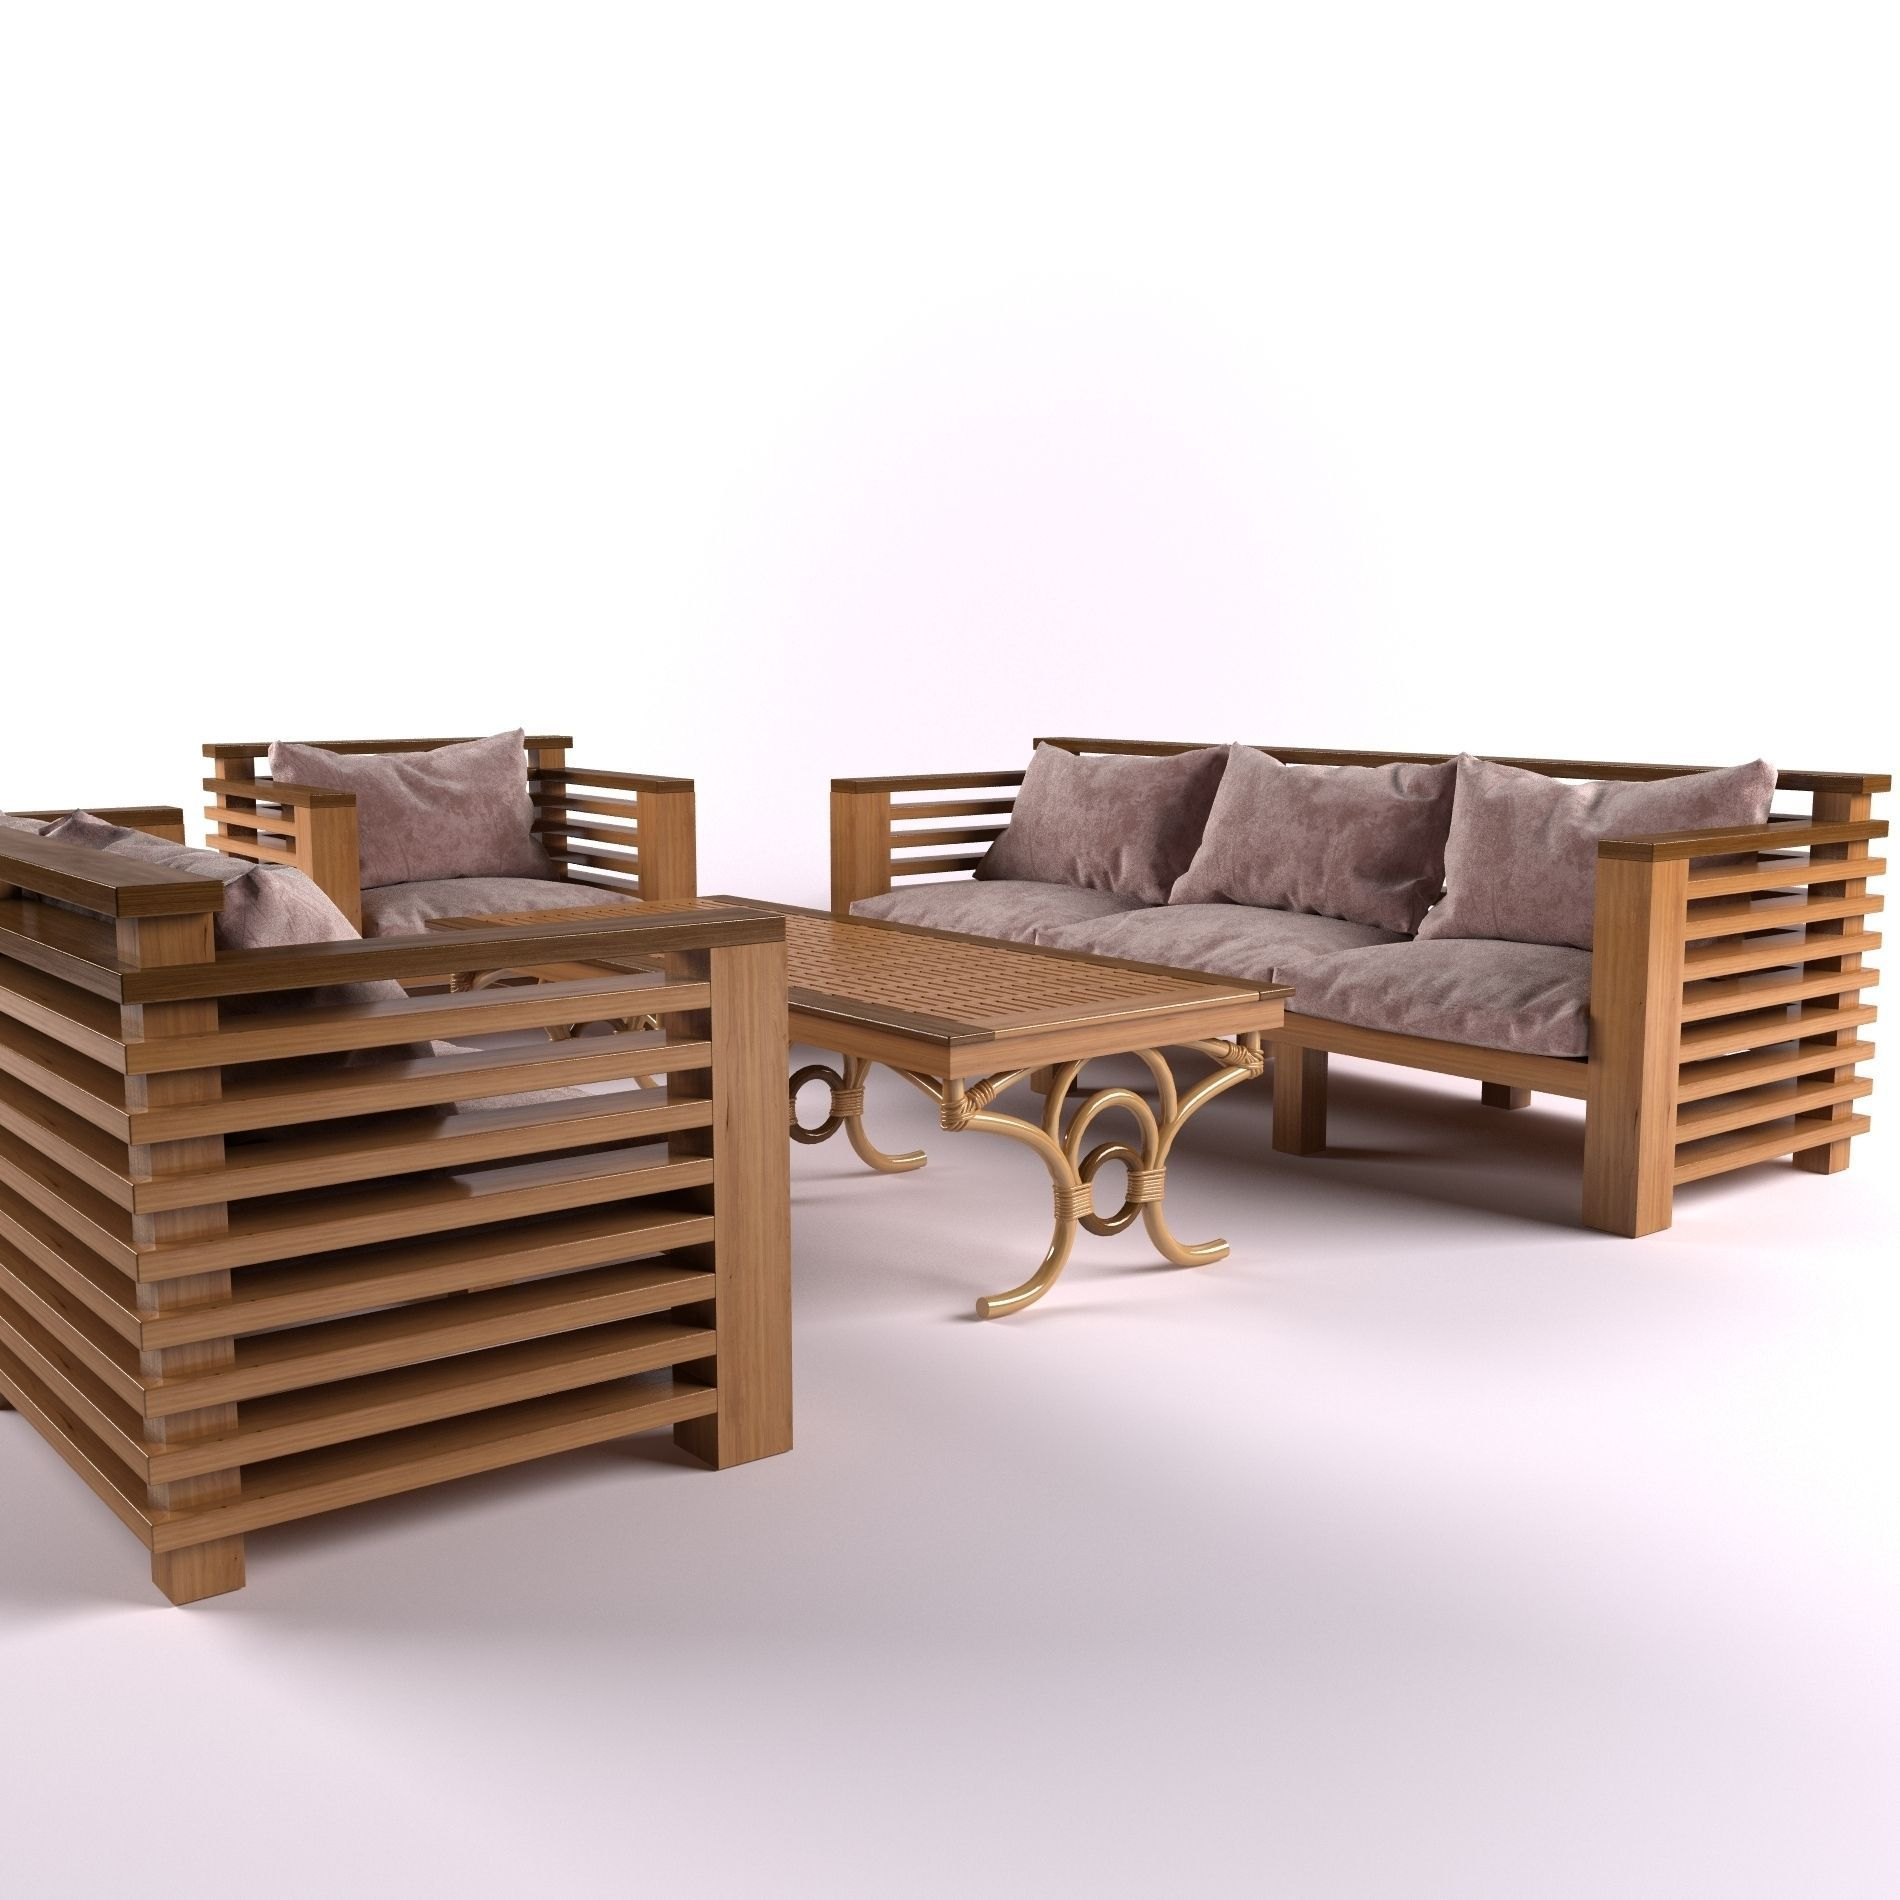 garden furniture 3d model max obj mtl 4 - Garden Furniture 3d